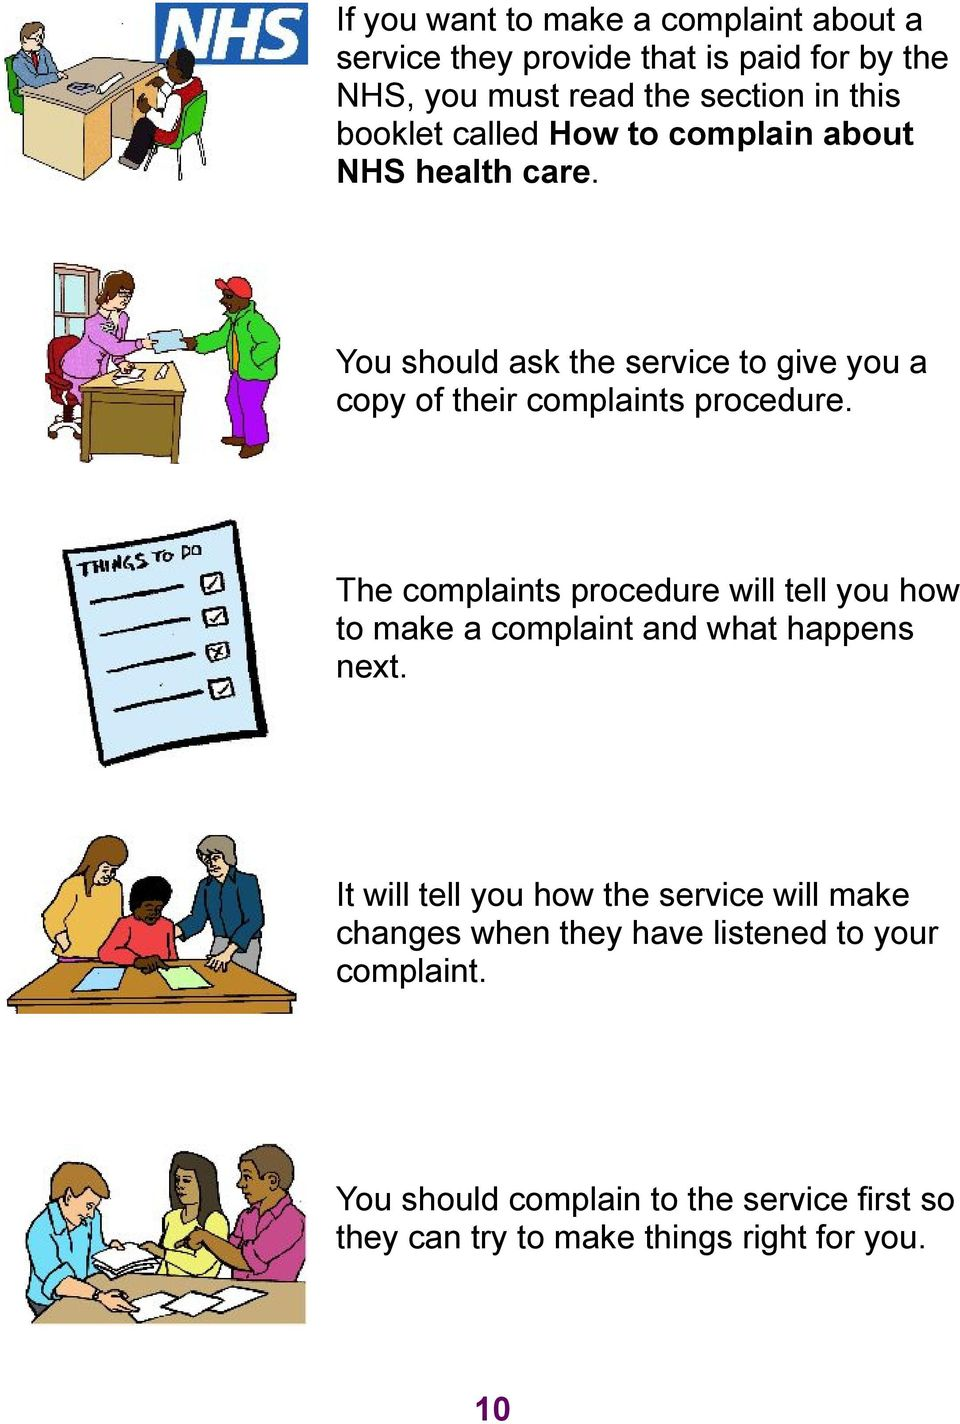 The complaints procedure will tell you how to make a complaint and what happens next.